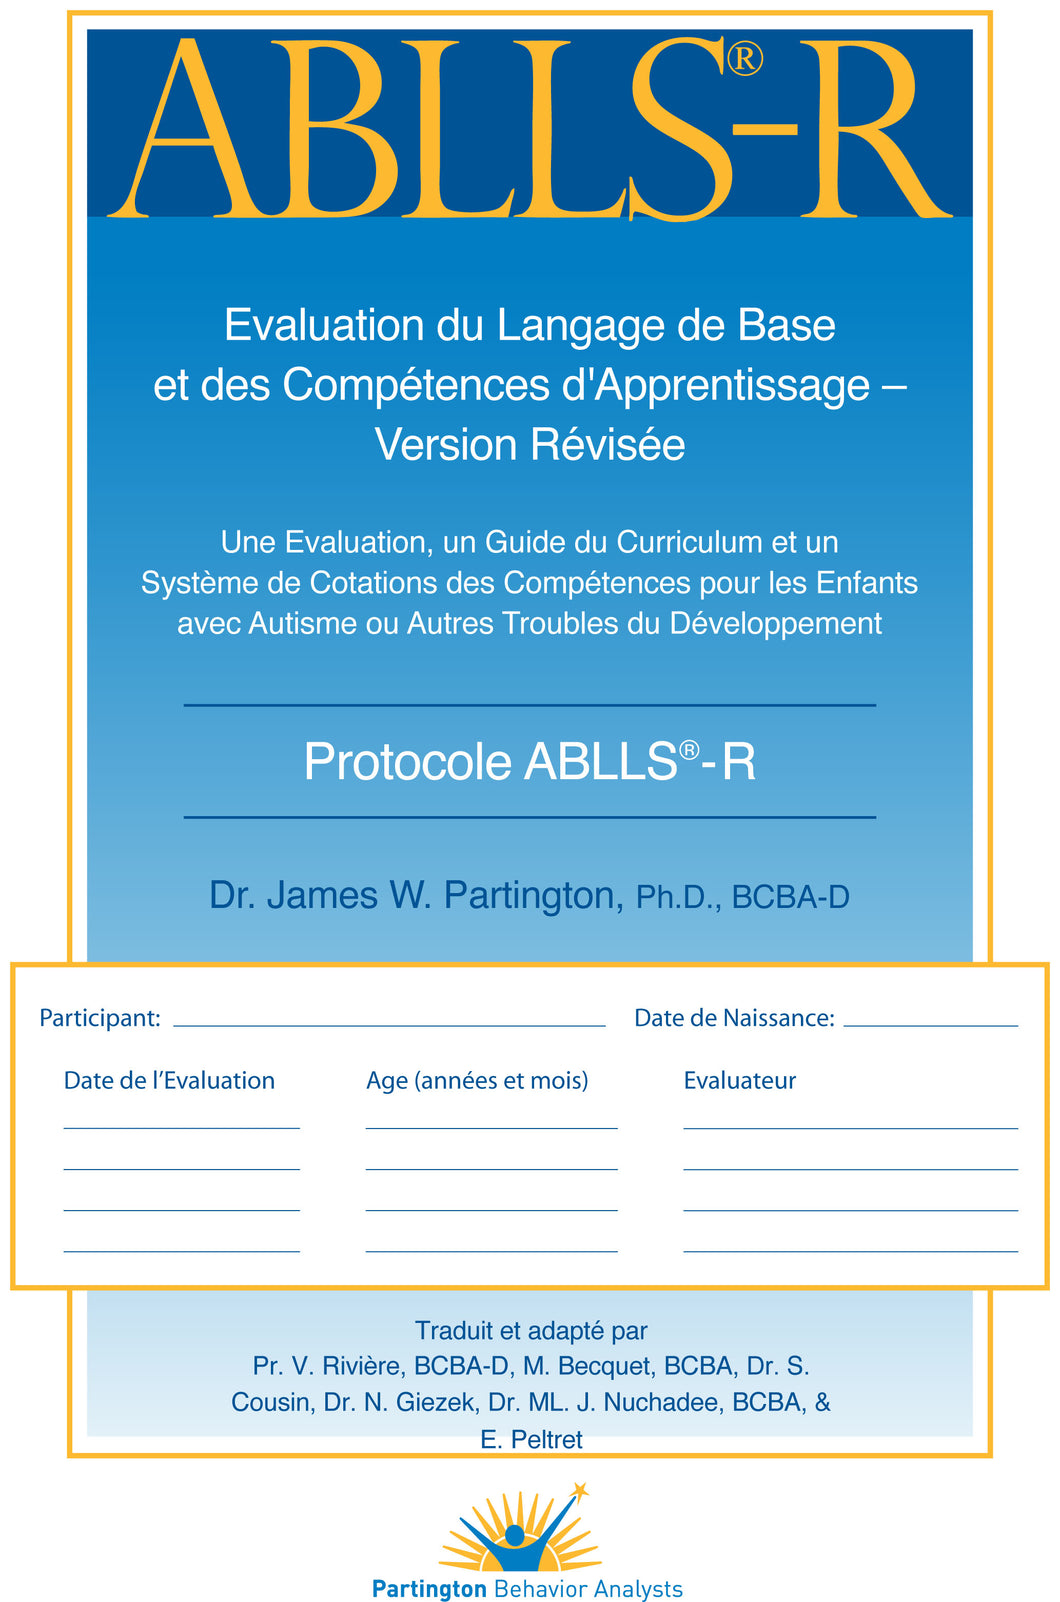 French ABLLS-R Protocol